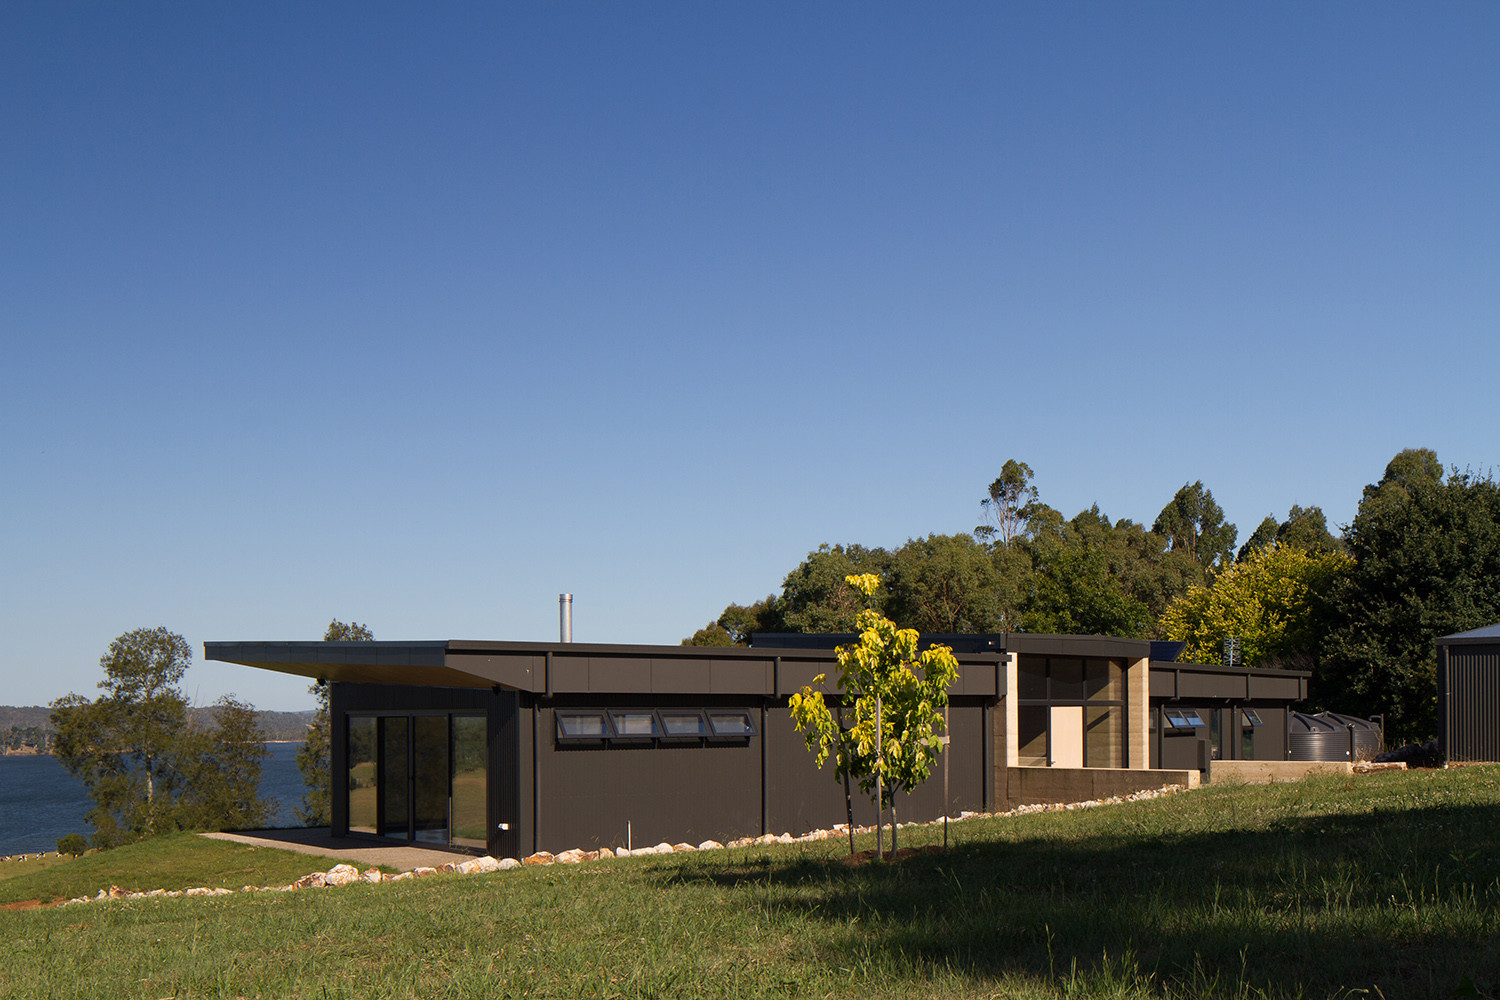 Willow grove finnis architects archdaily - The wing house maison ailee en australie ...